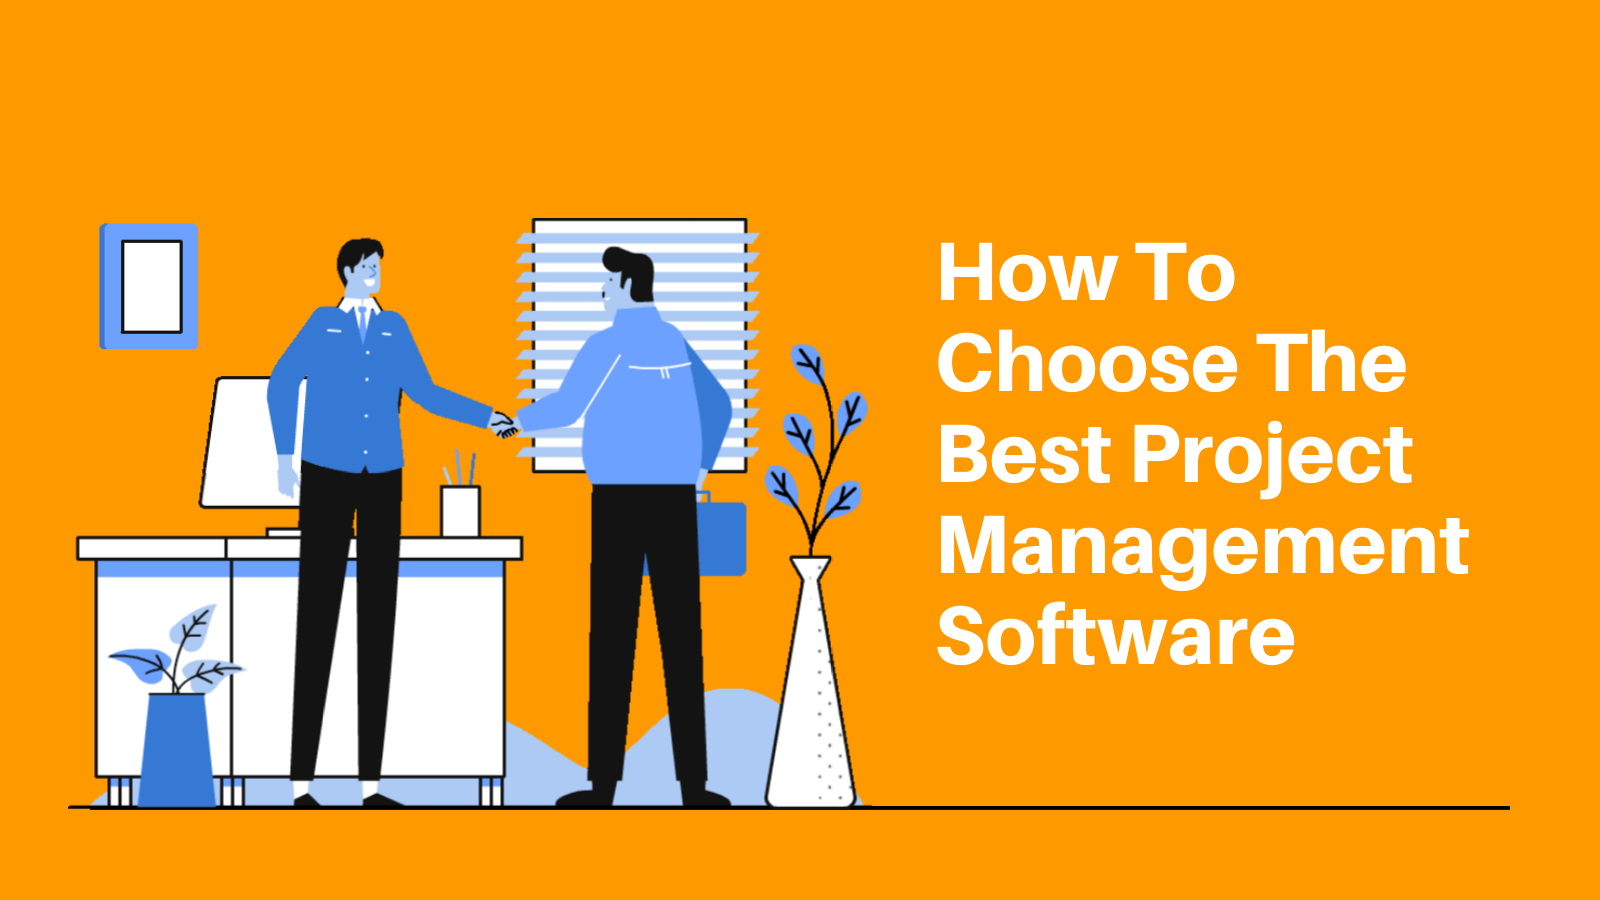 How To Choose The Best Project Management Software